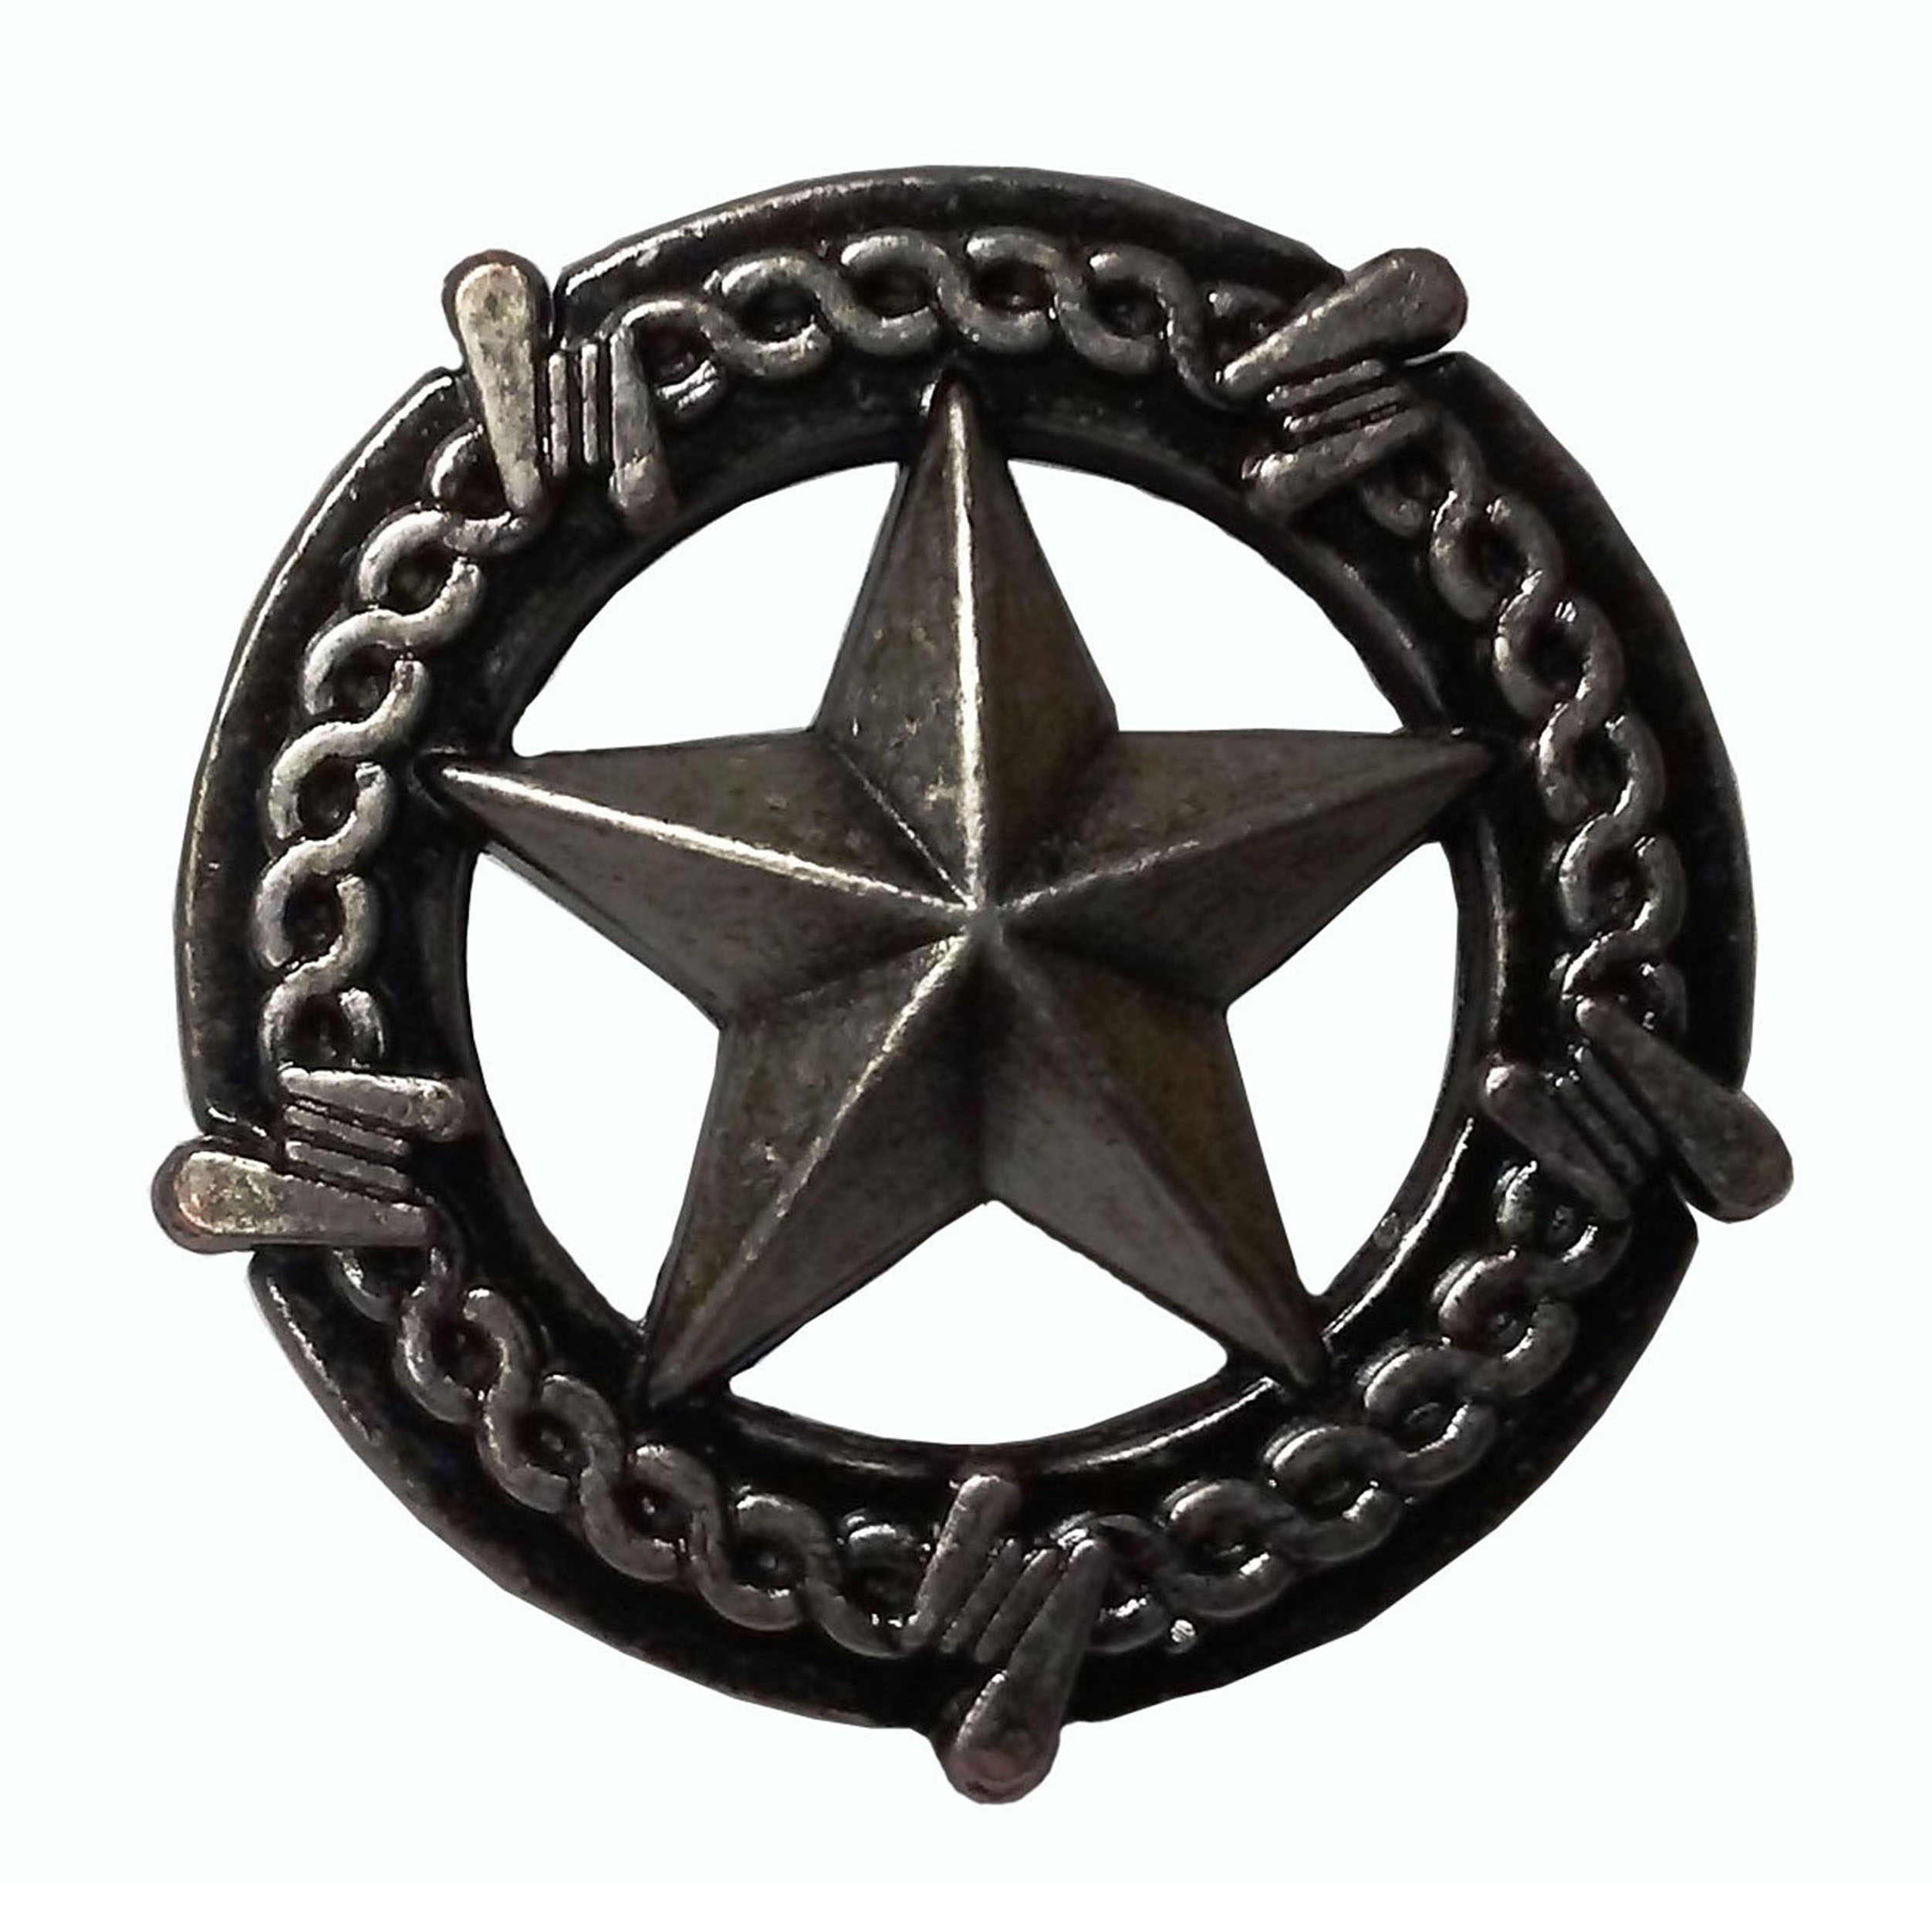 Star with Barbed Wire Knob, Pewter Oxide